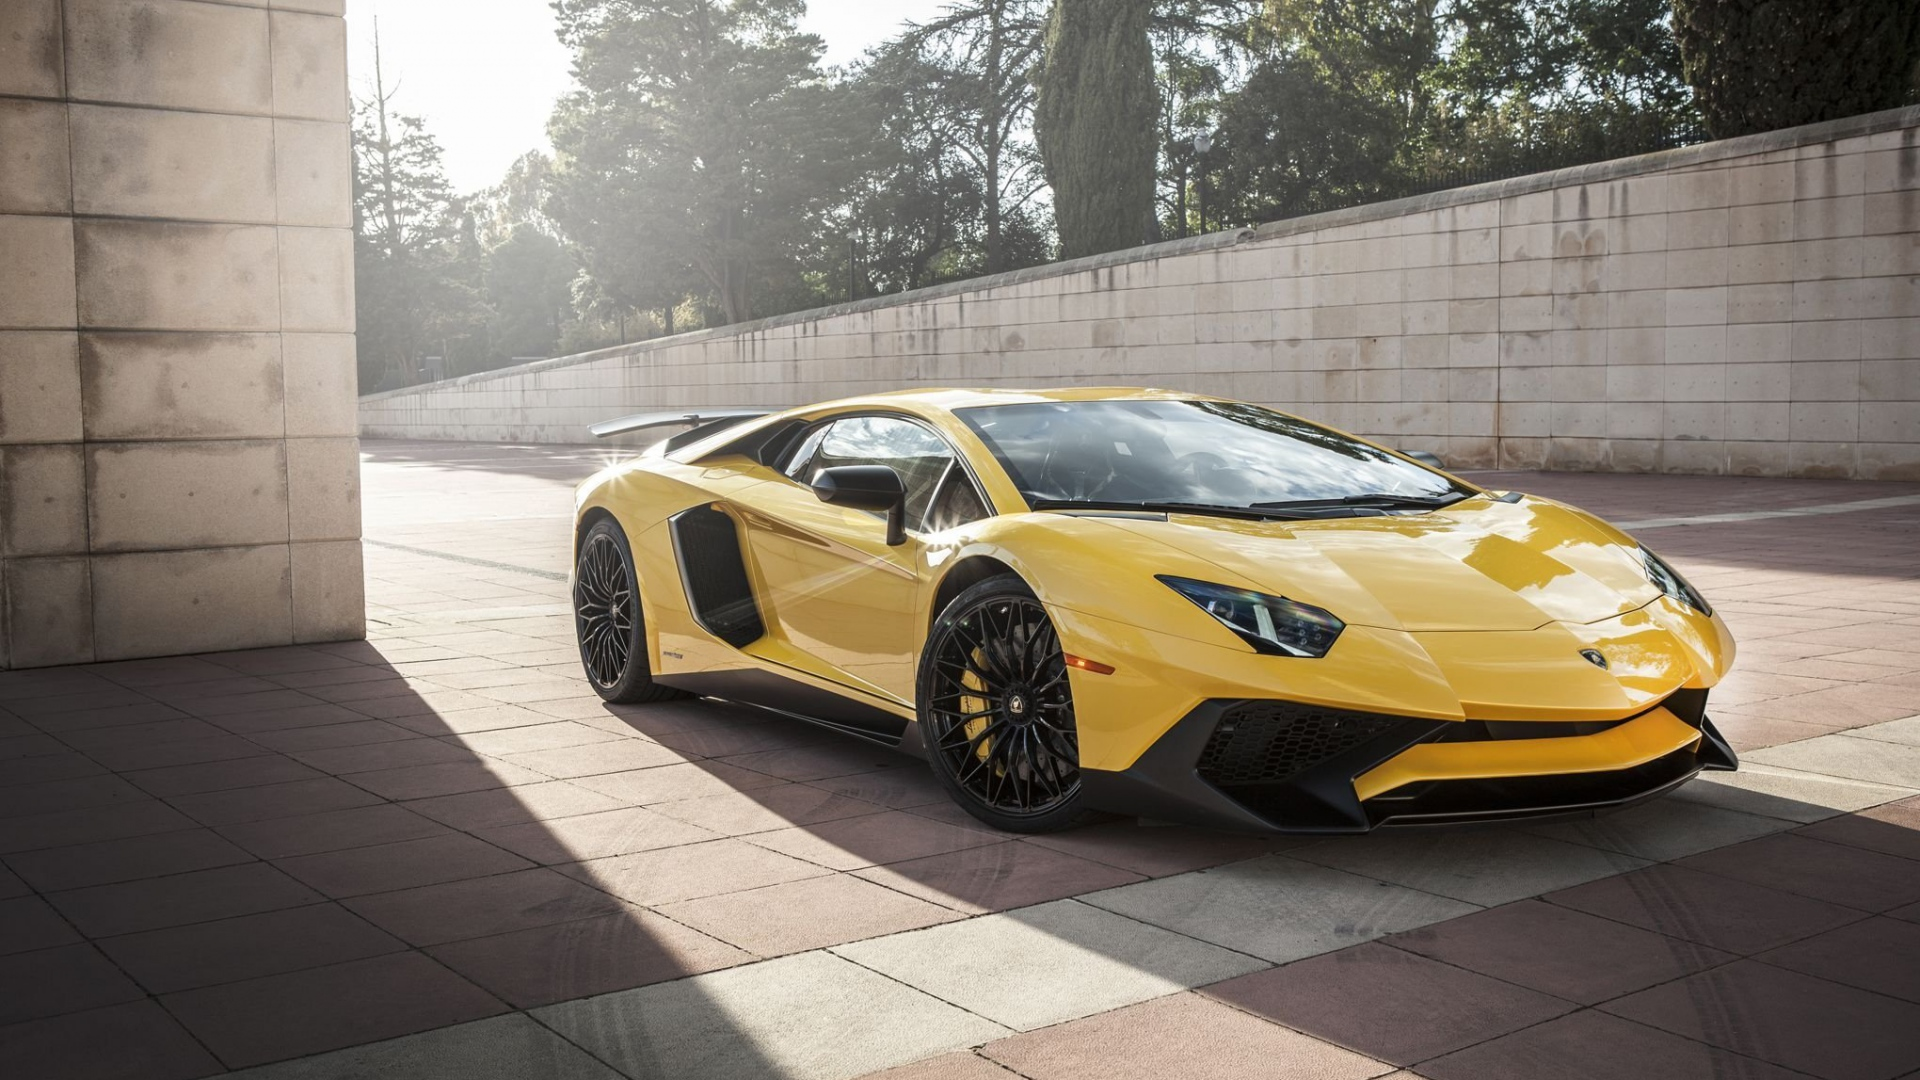 Lamborghini Car Wallpaper Hd Download Supercar Lamborghini Wallpaper Pixelstalk Net